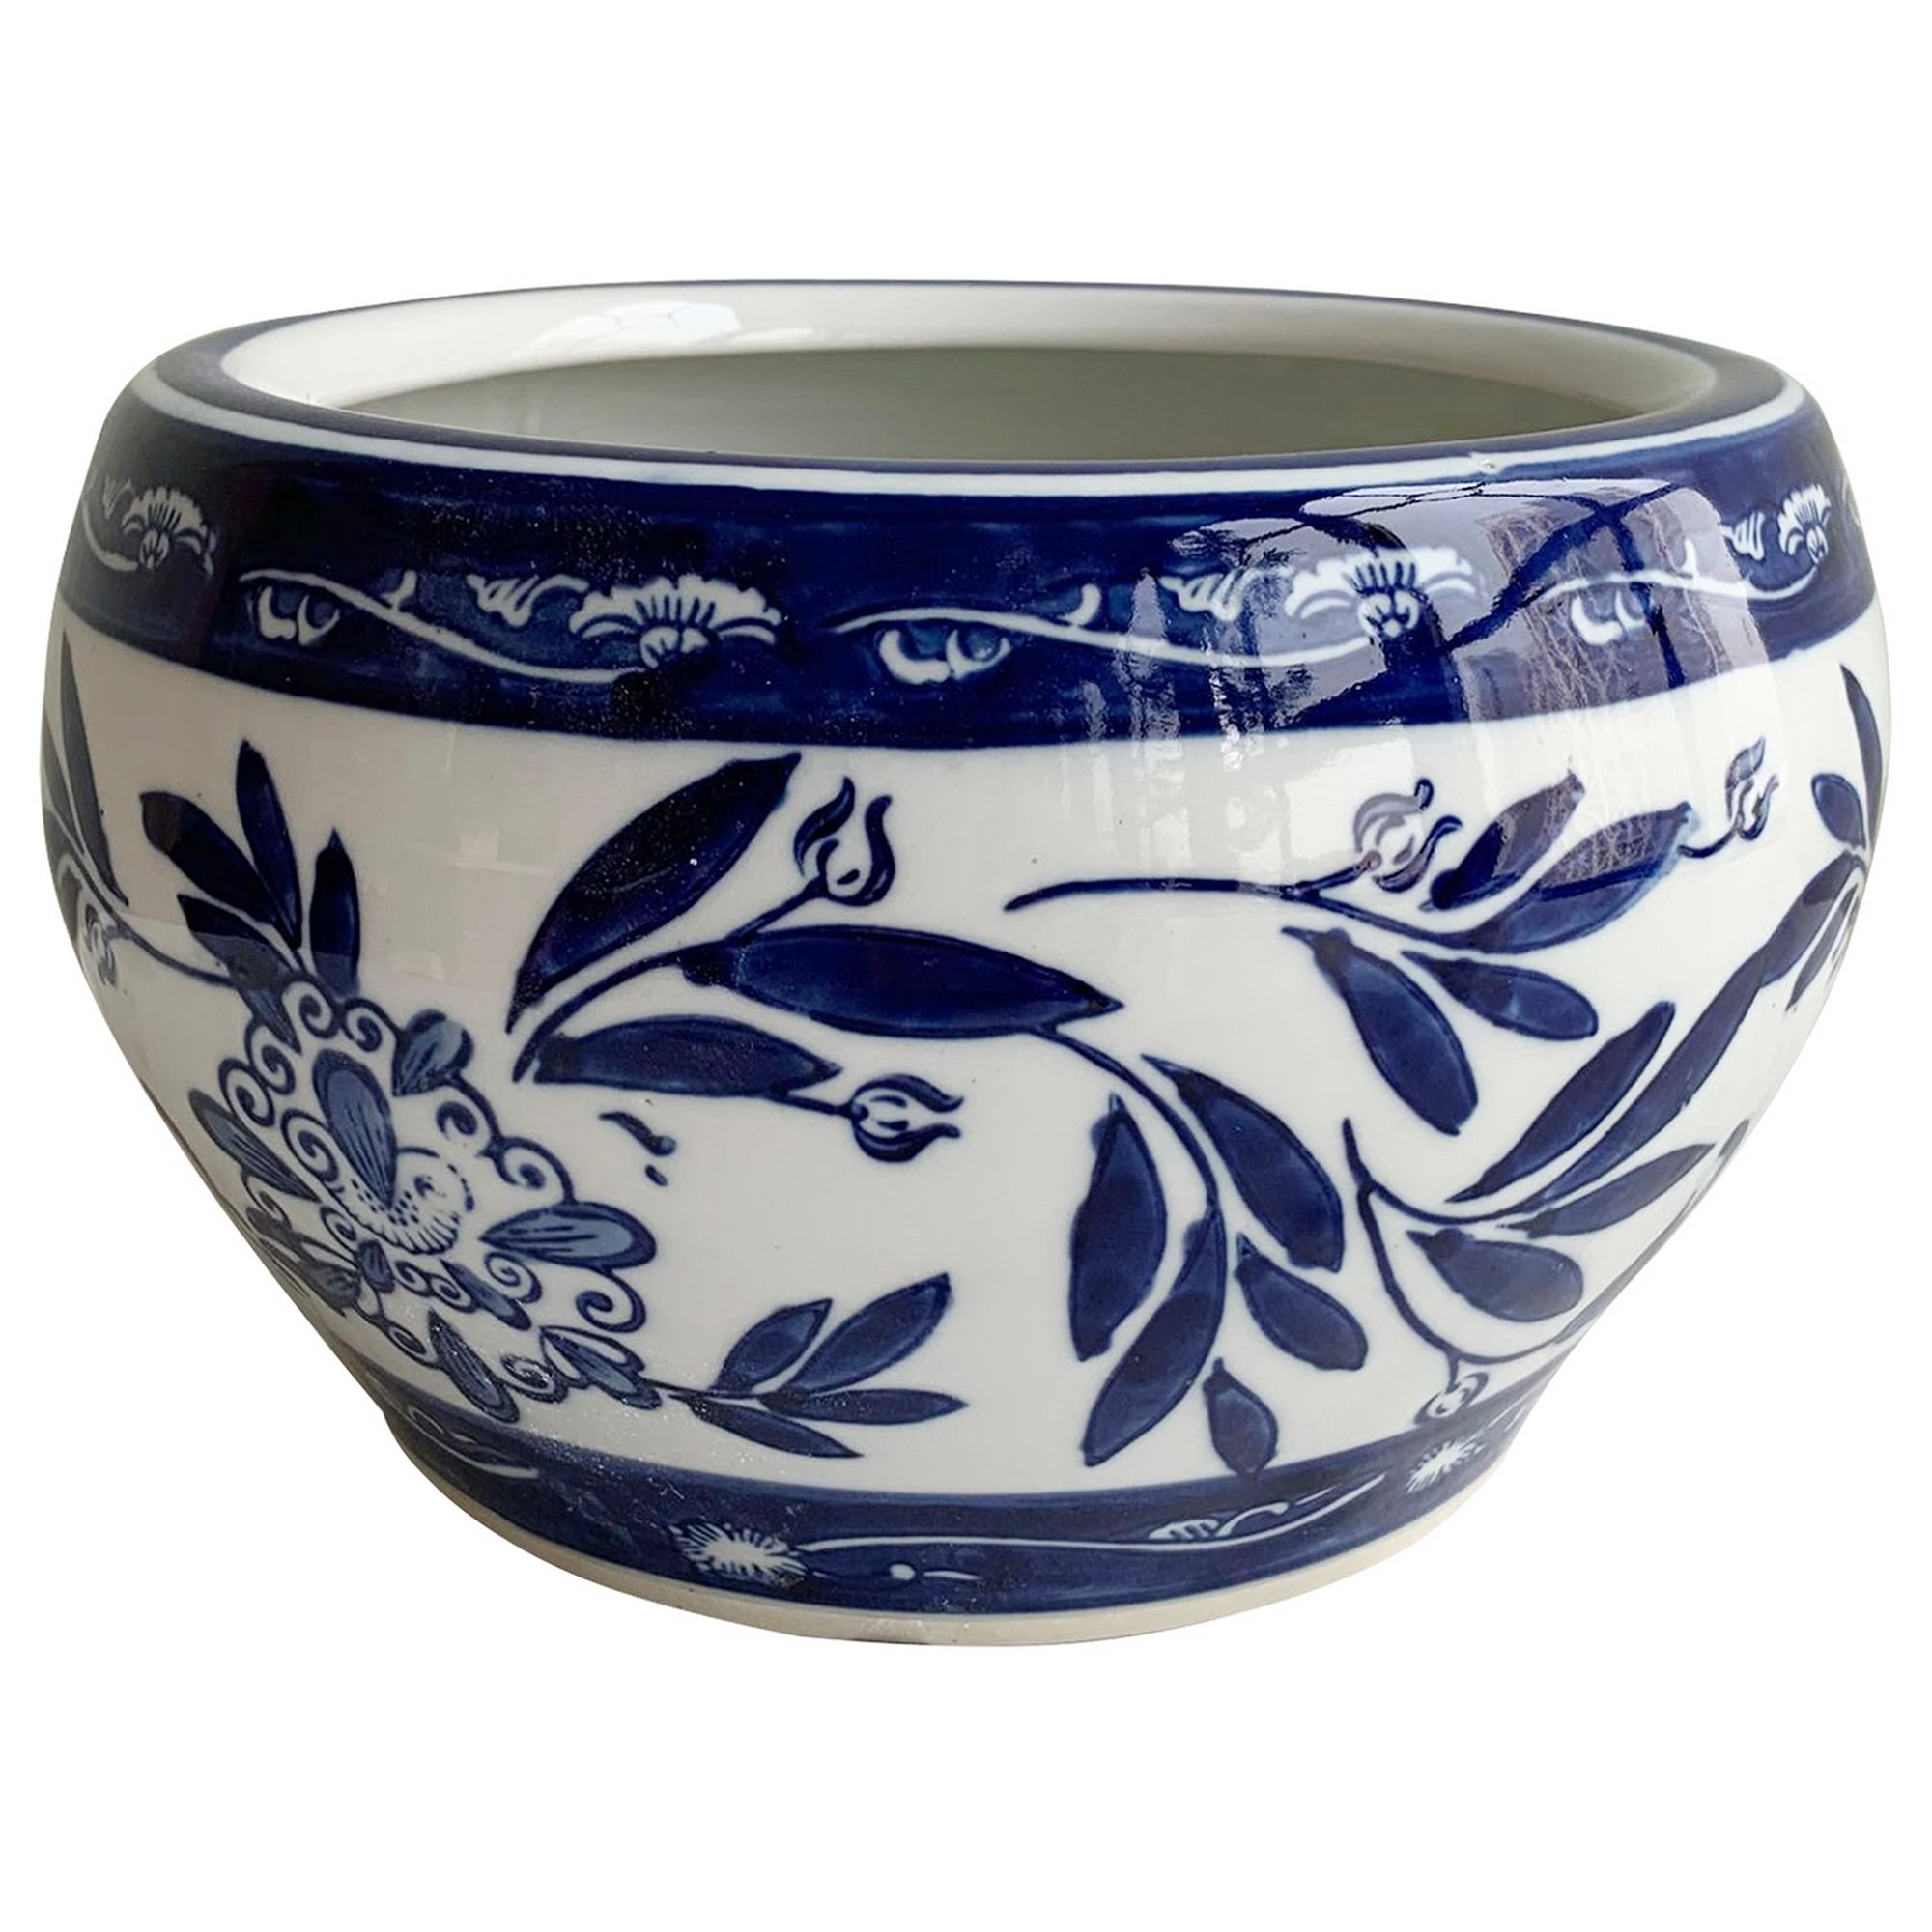 Mito Porcelain Bowl Planter, Small